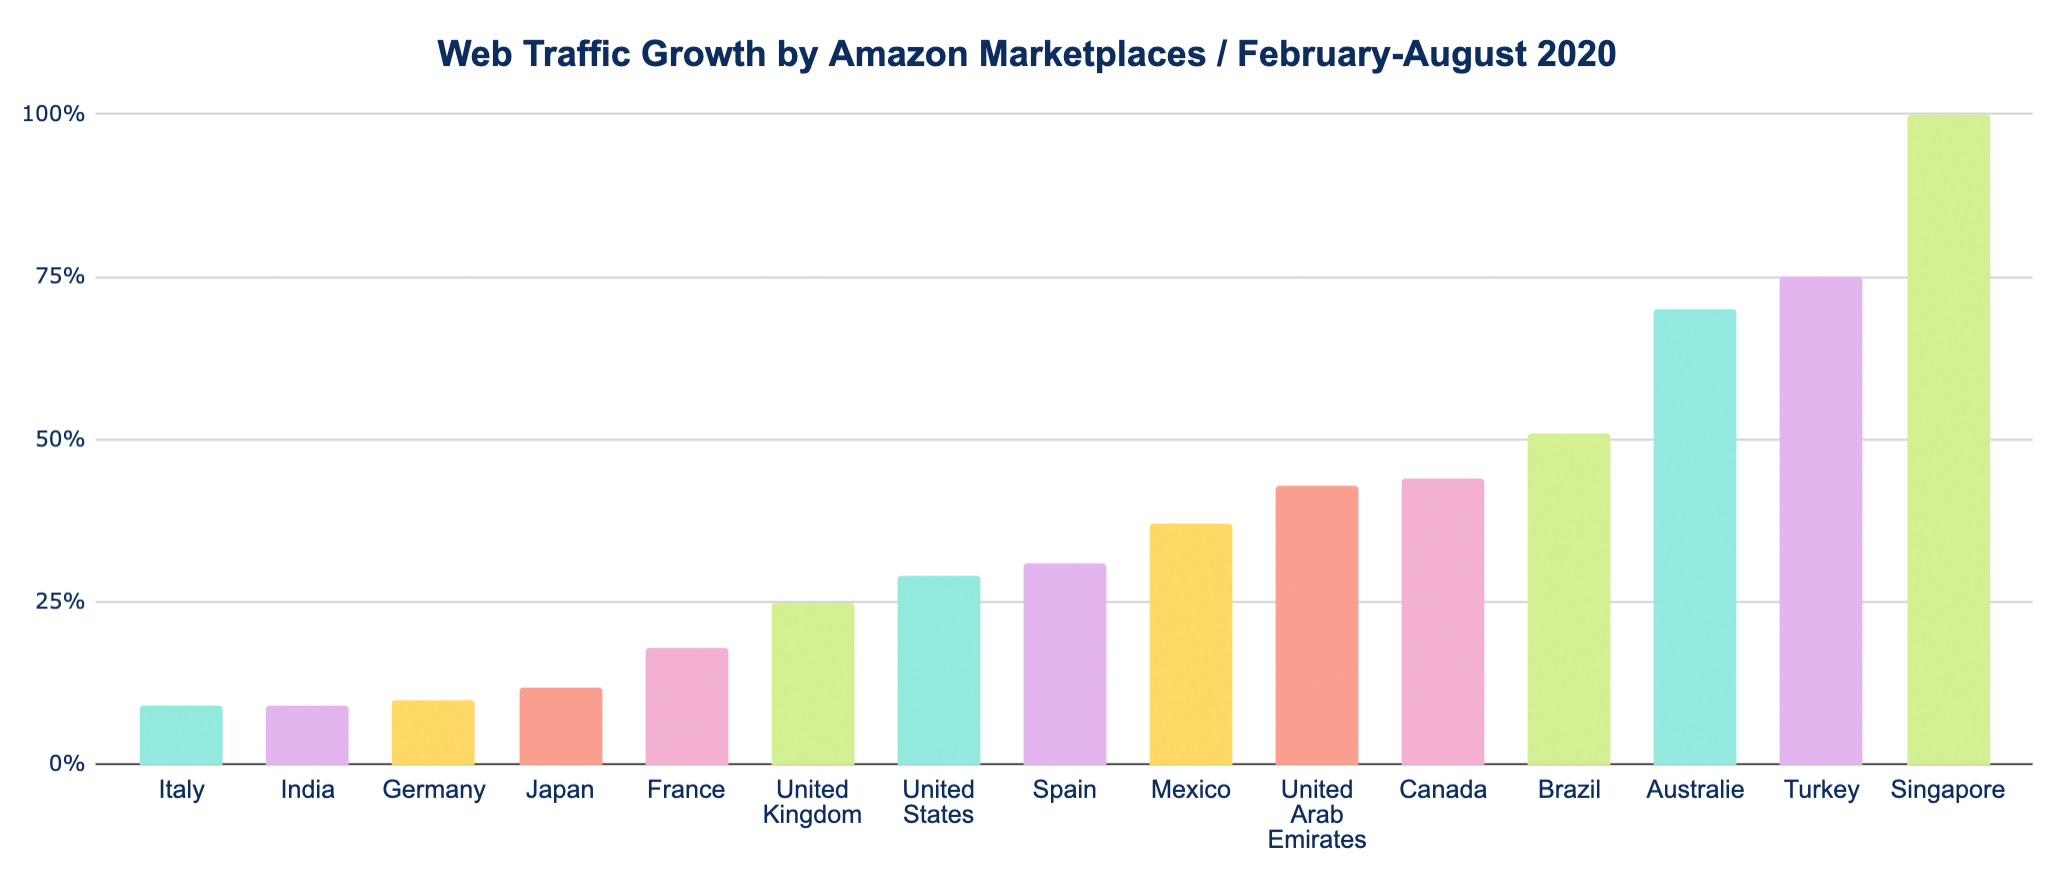 Web Traffic Growth by Amazon Marketplaces / February-August 2020